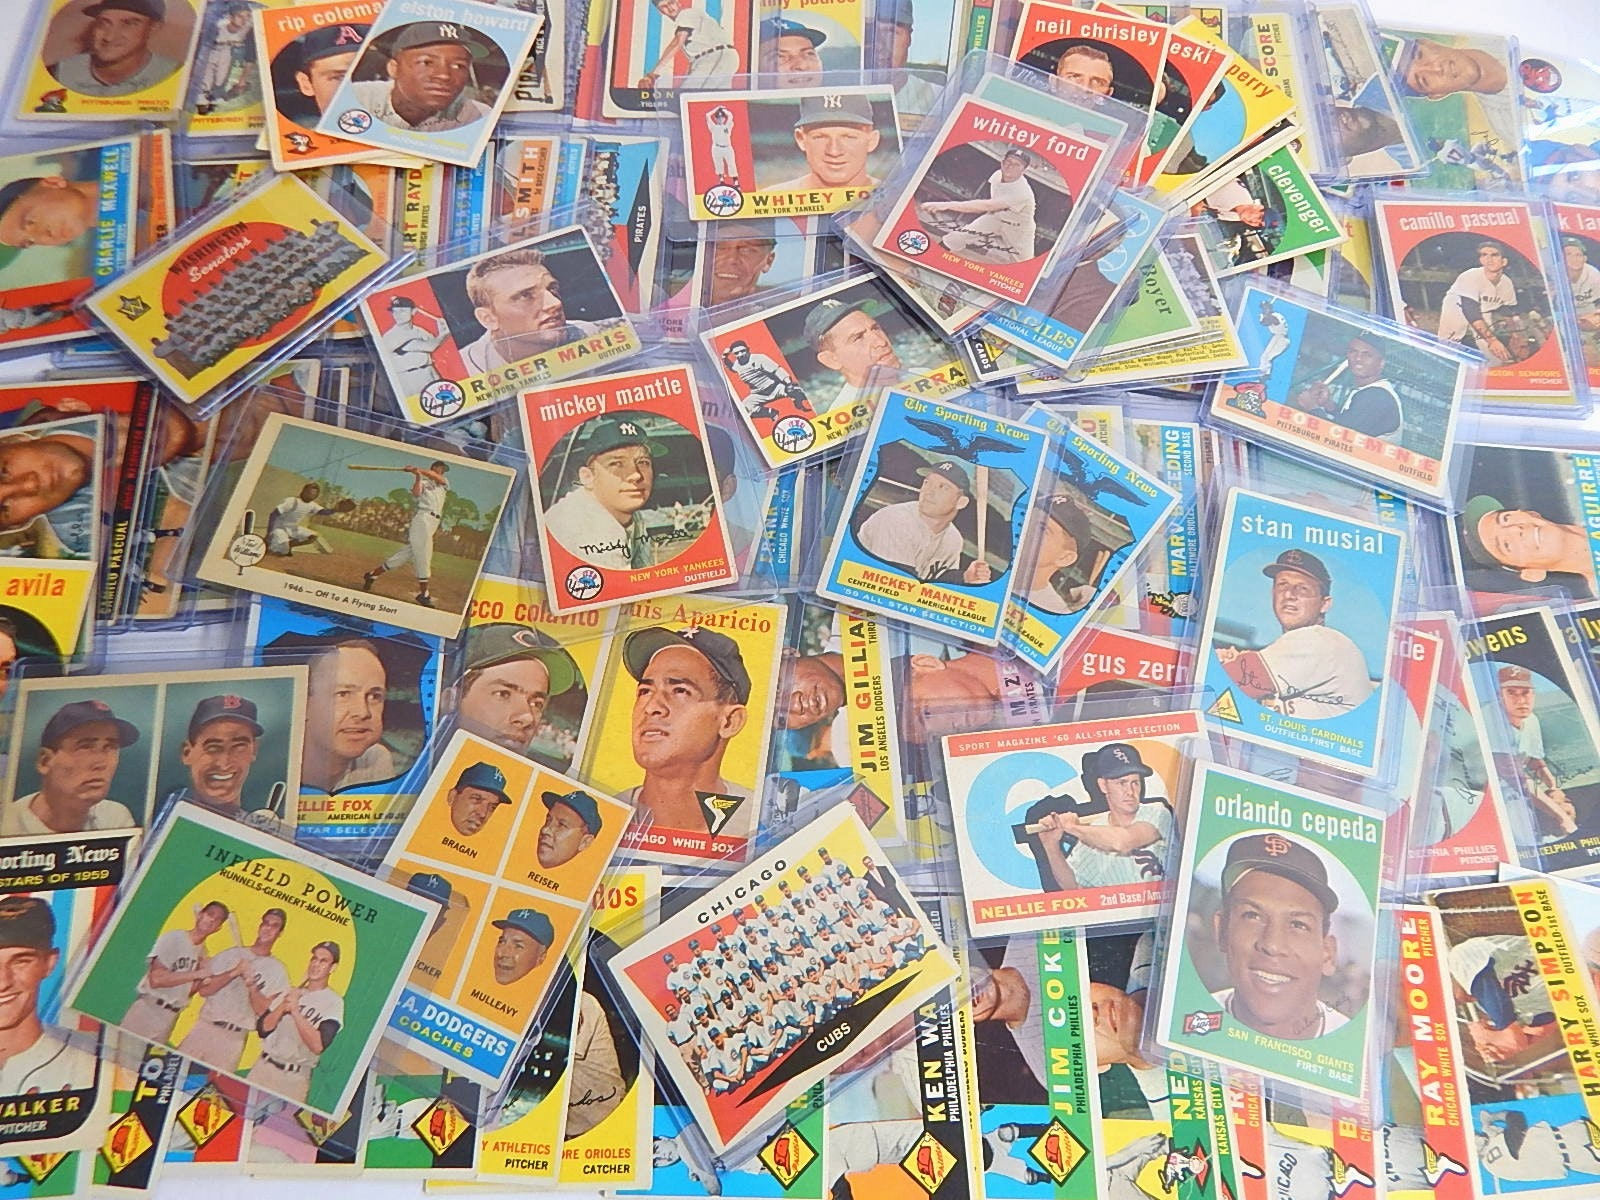 Large Vintage Baseball Card Lot from 1955 to 1961 with Mantle, Musial, Berra